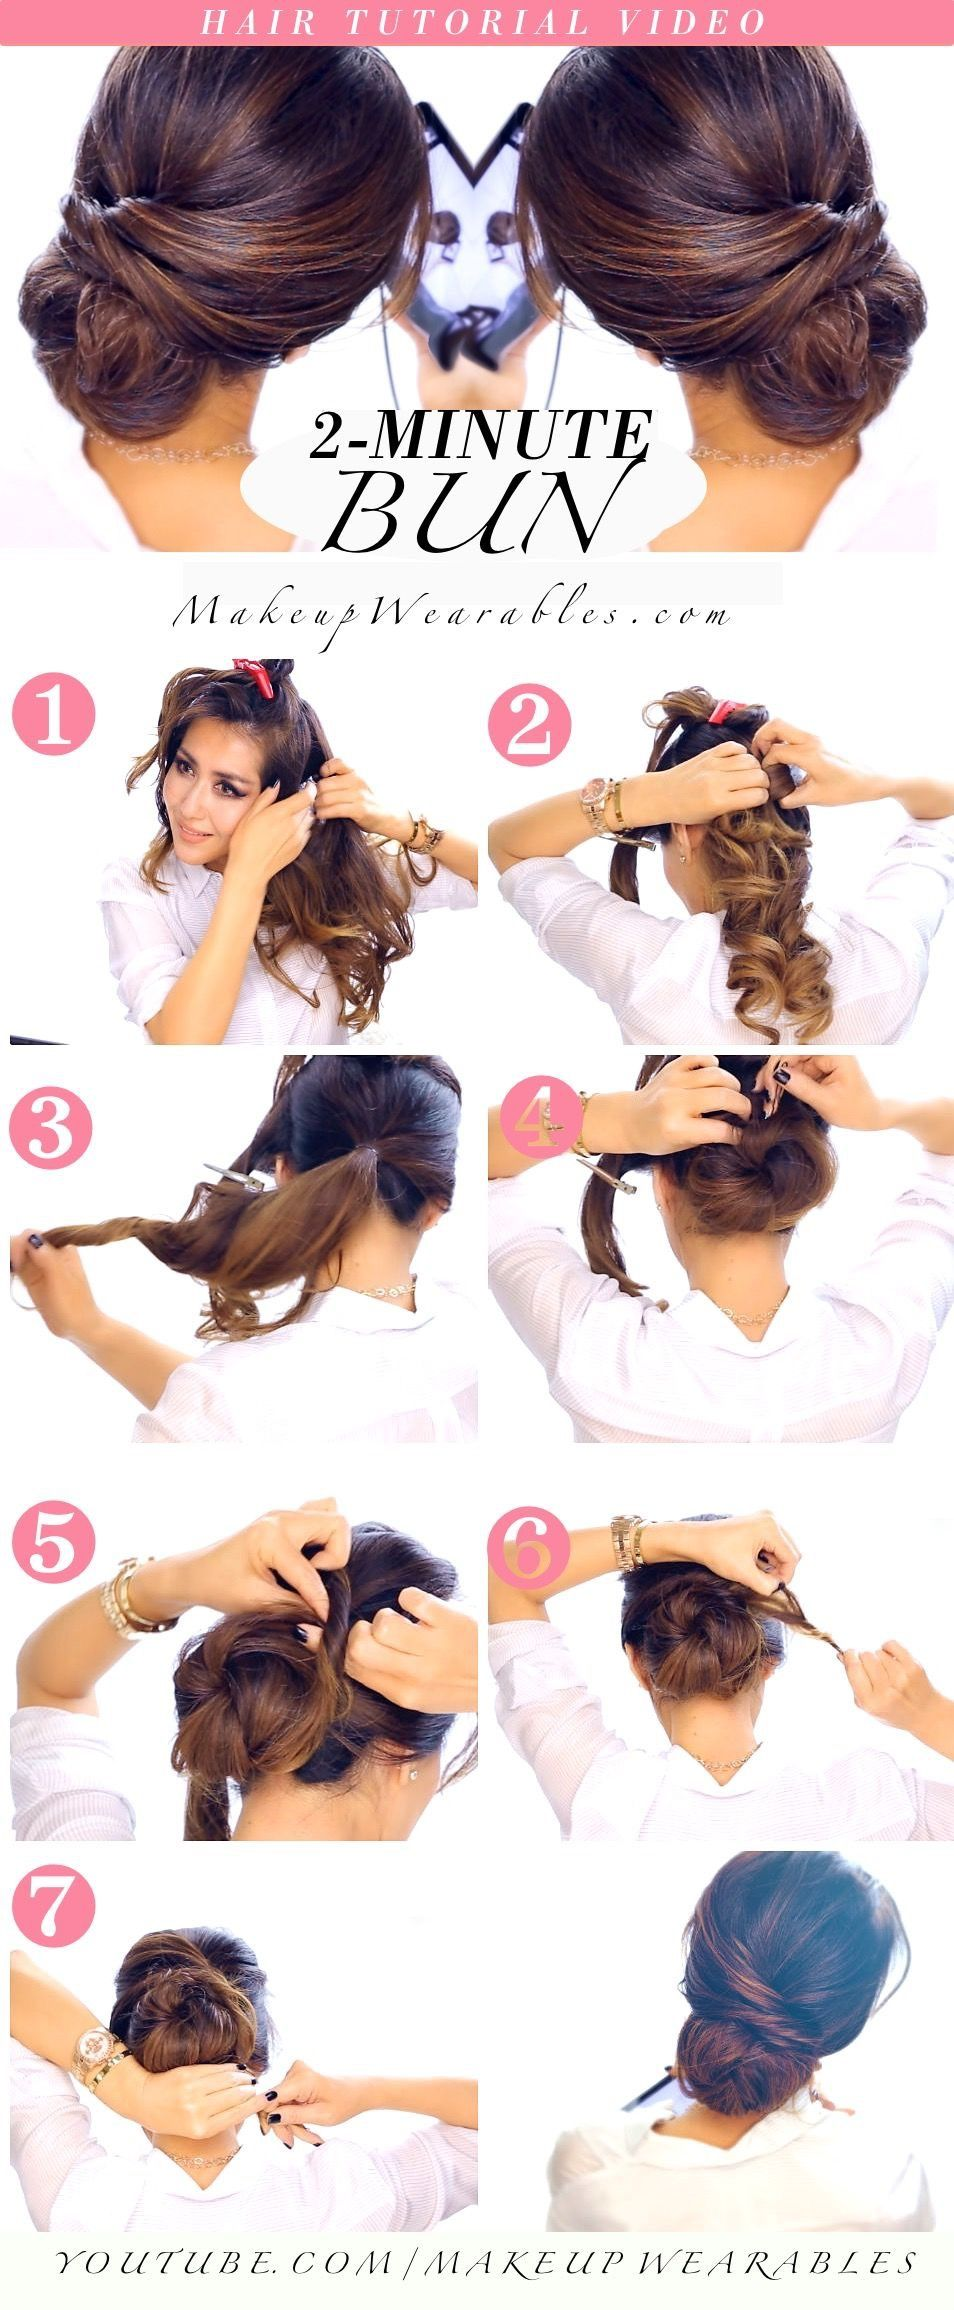 Nutturoita | imagenes | Pinterest | Hair style, Updos and Makeup